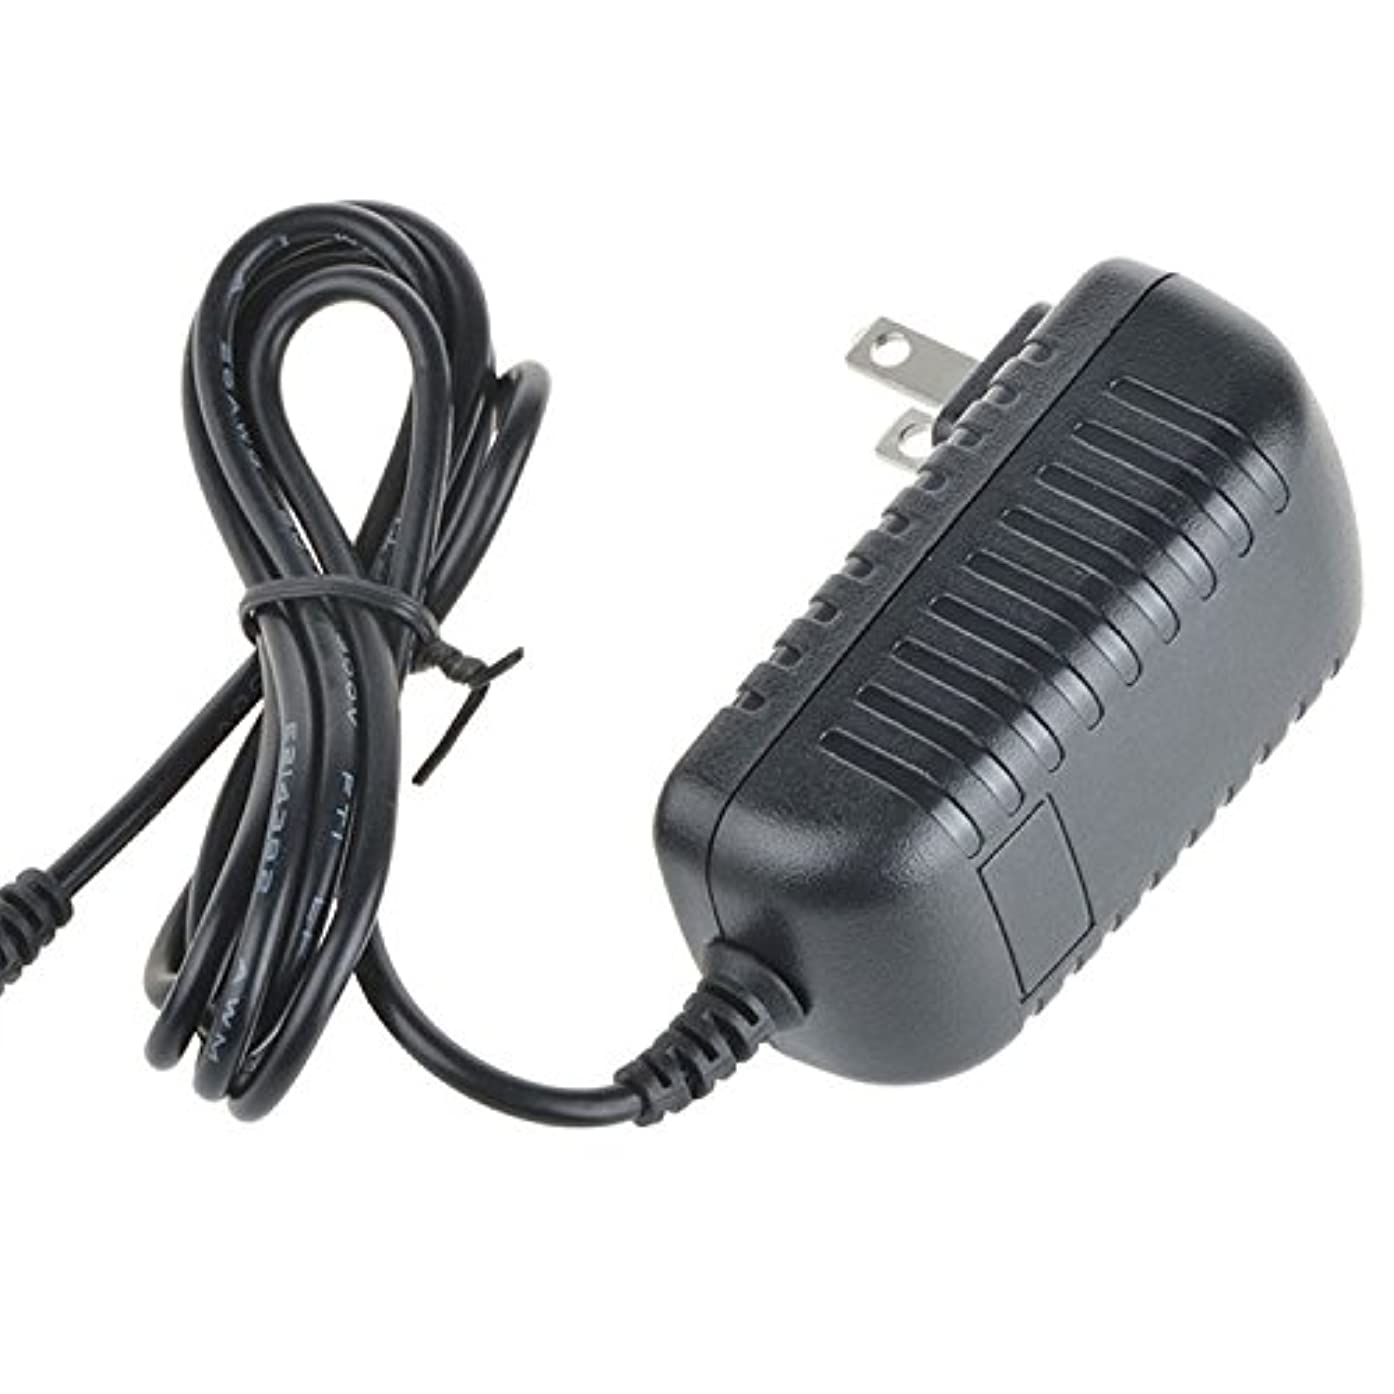 Accessory USA AC DC Adapter for Cybex Tectrix Bikemax Recumbent Exercise Bike Part # 50063 A 50063A Power Supply Cord Cable Charger